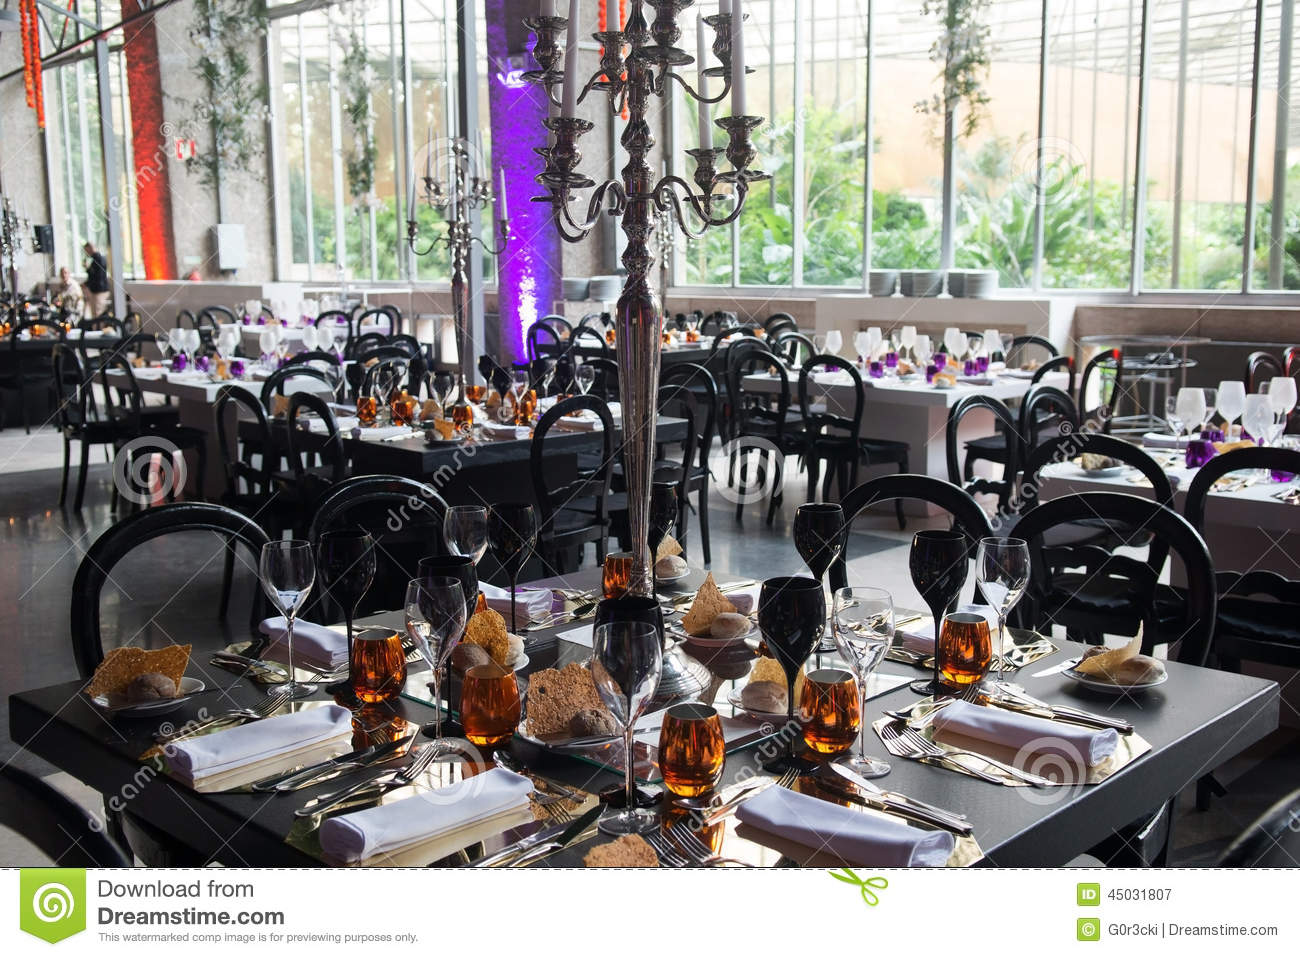 Event Banquet Tables Decoration Stock Image Image 45031807 : event banquet tables decoration wedding party business amber purple crystal silver white black tones silvery 45031807 from www.dreamstime.com size 1300 x 957 jpeg 229kB